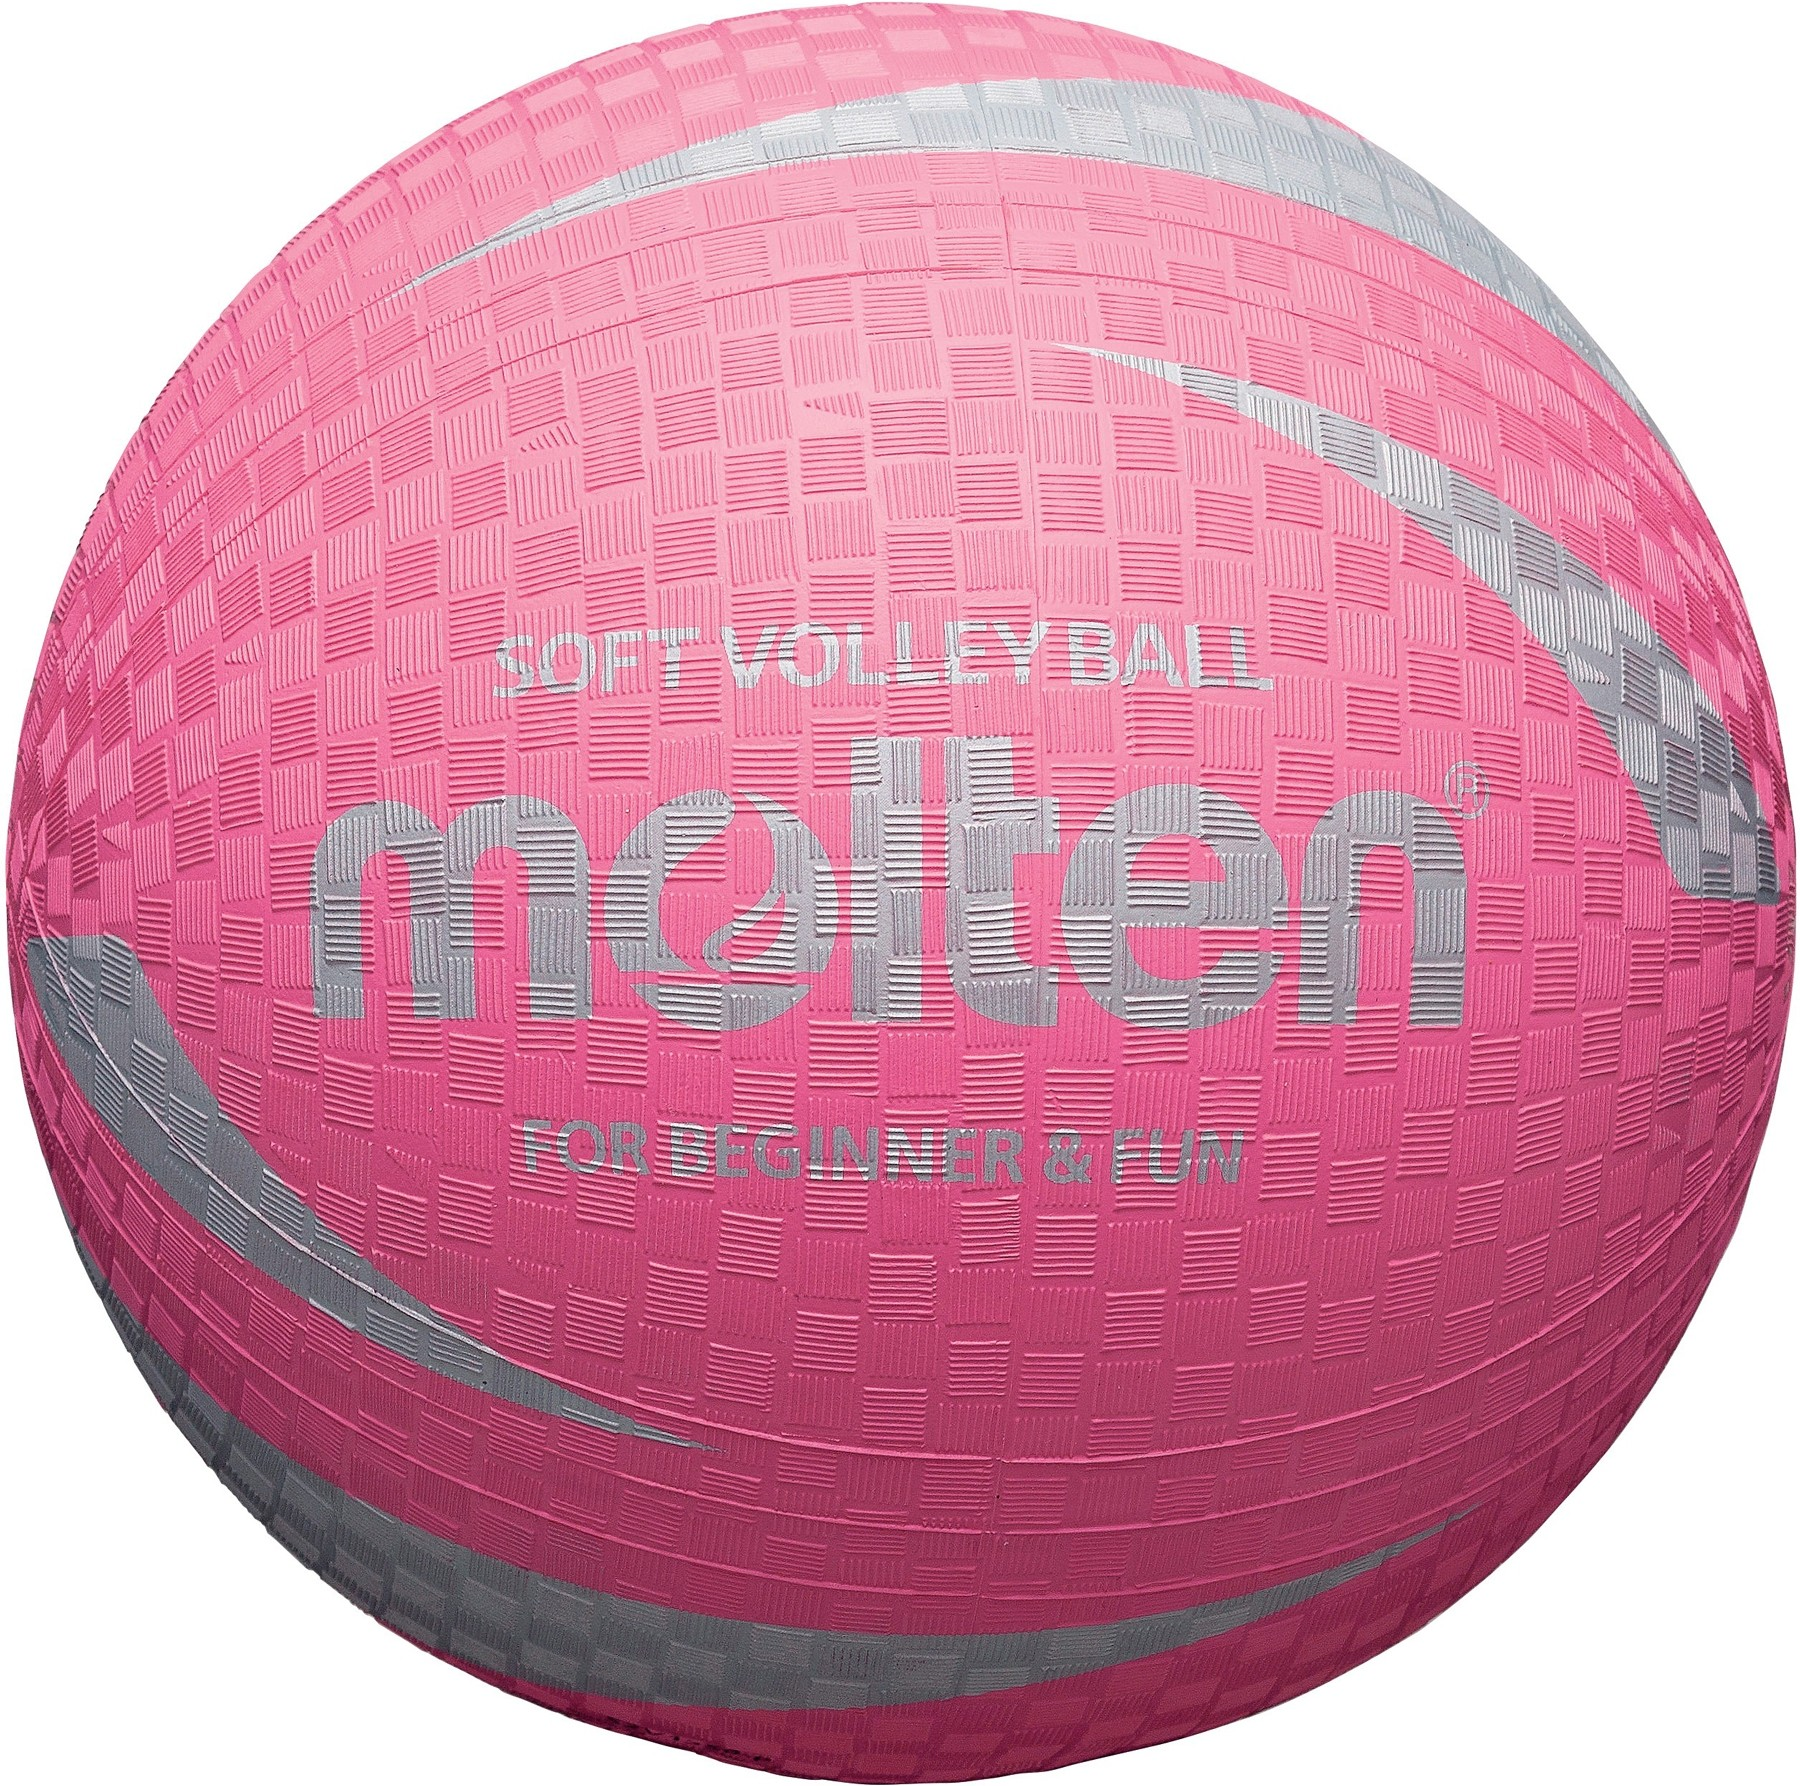 Pink Rubber Volleyball